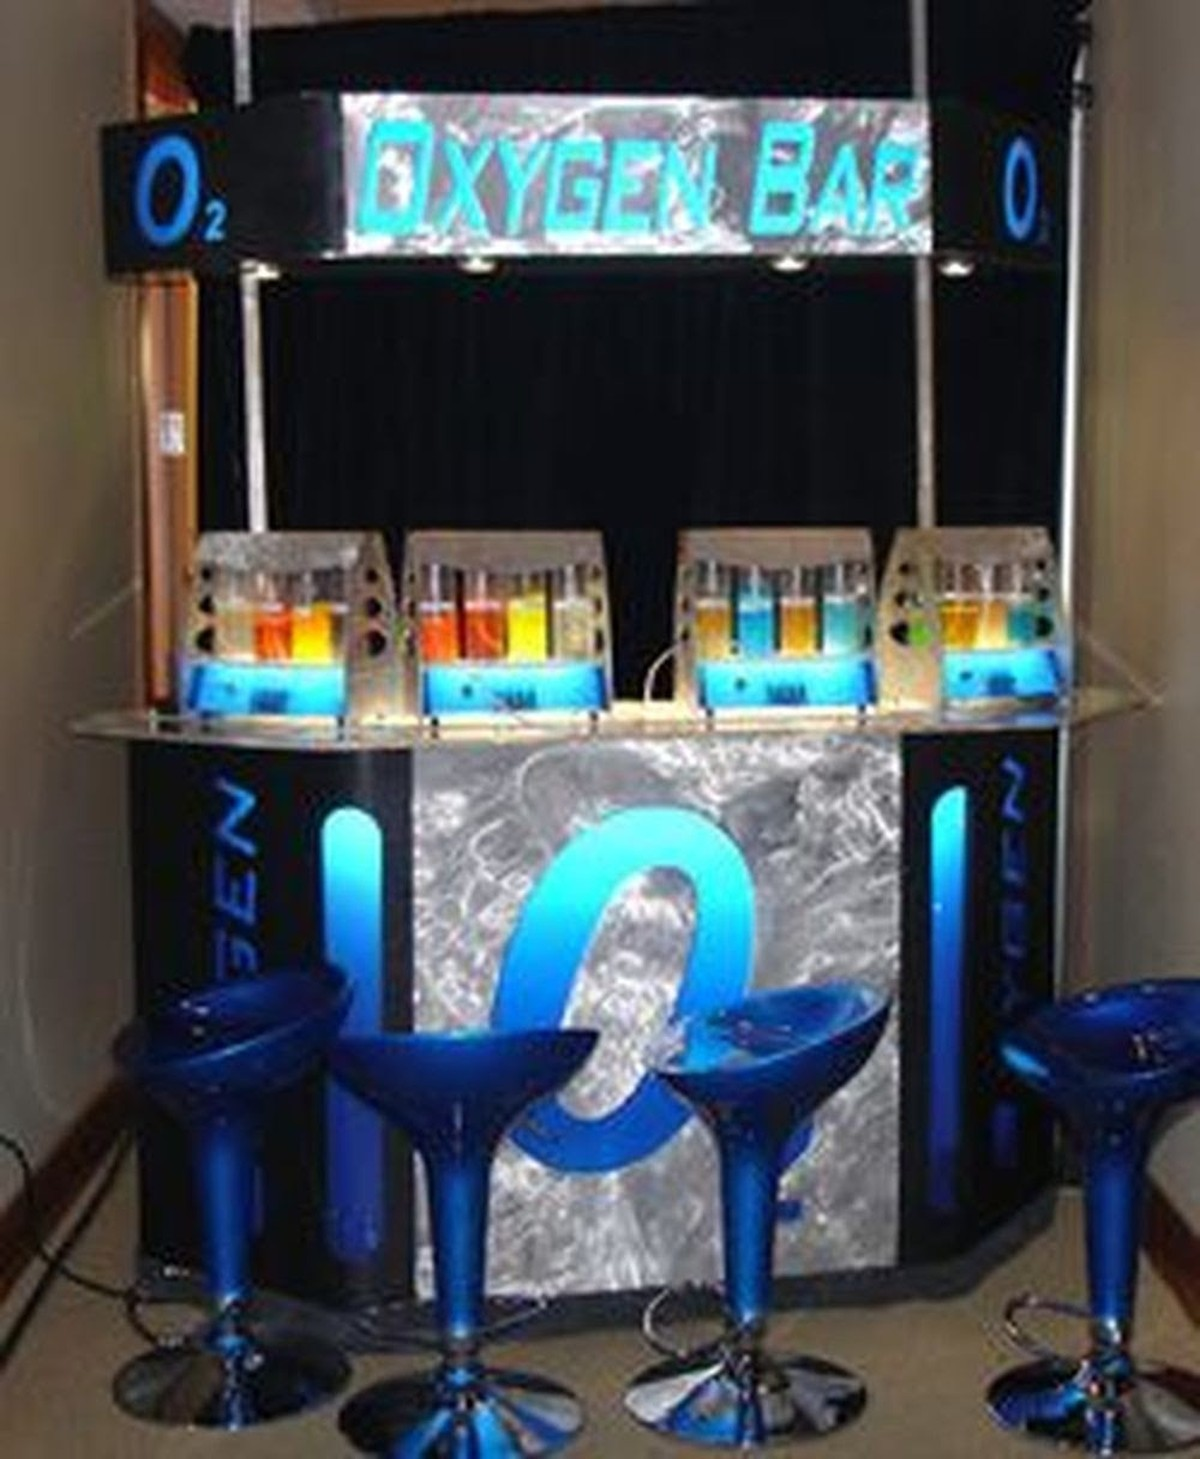 Profitable Business For Sale | Bars and Pubs | Oxygen Bar ...